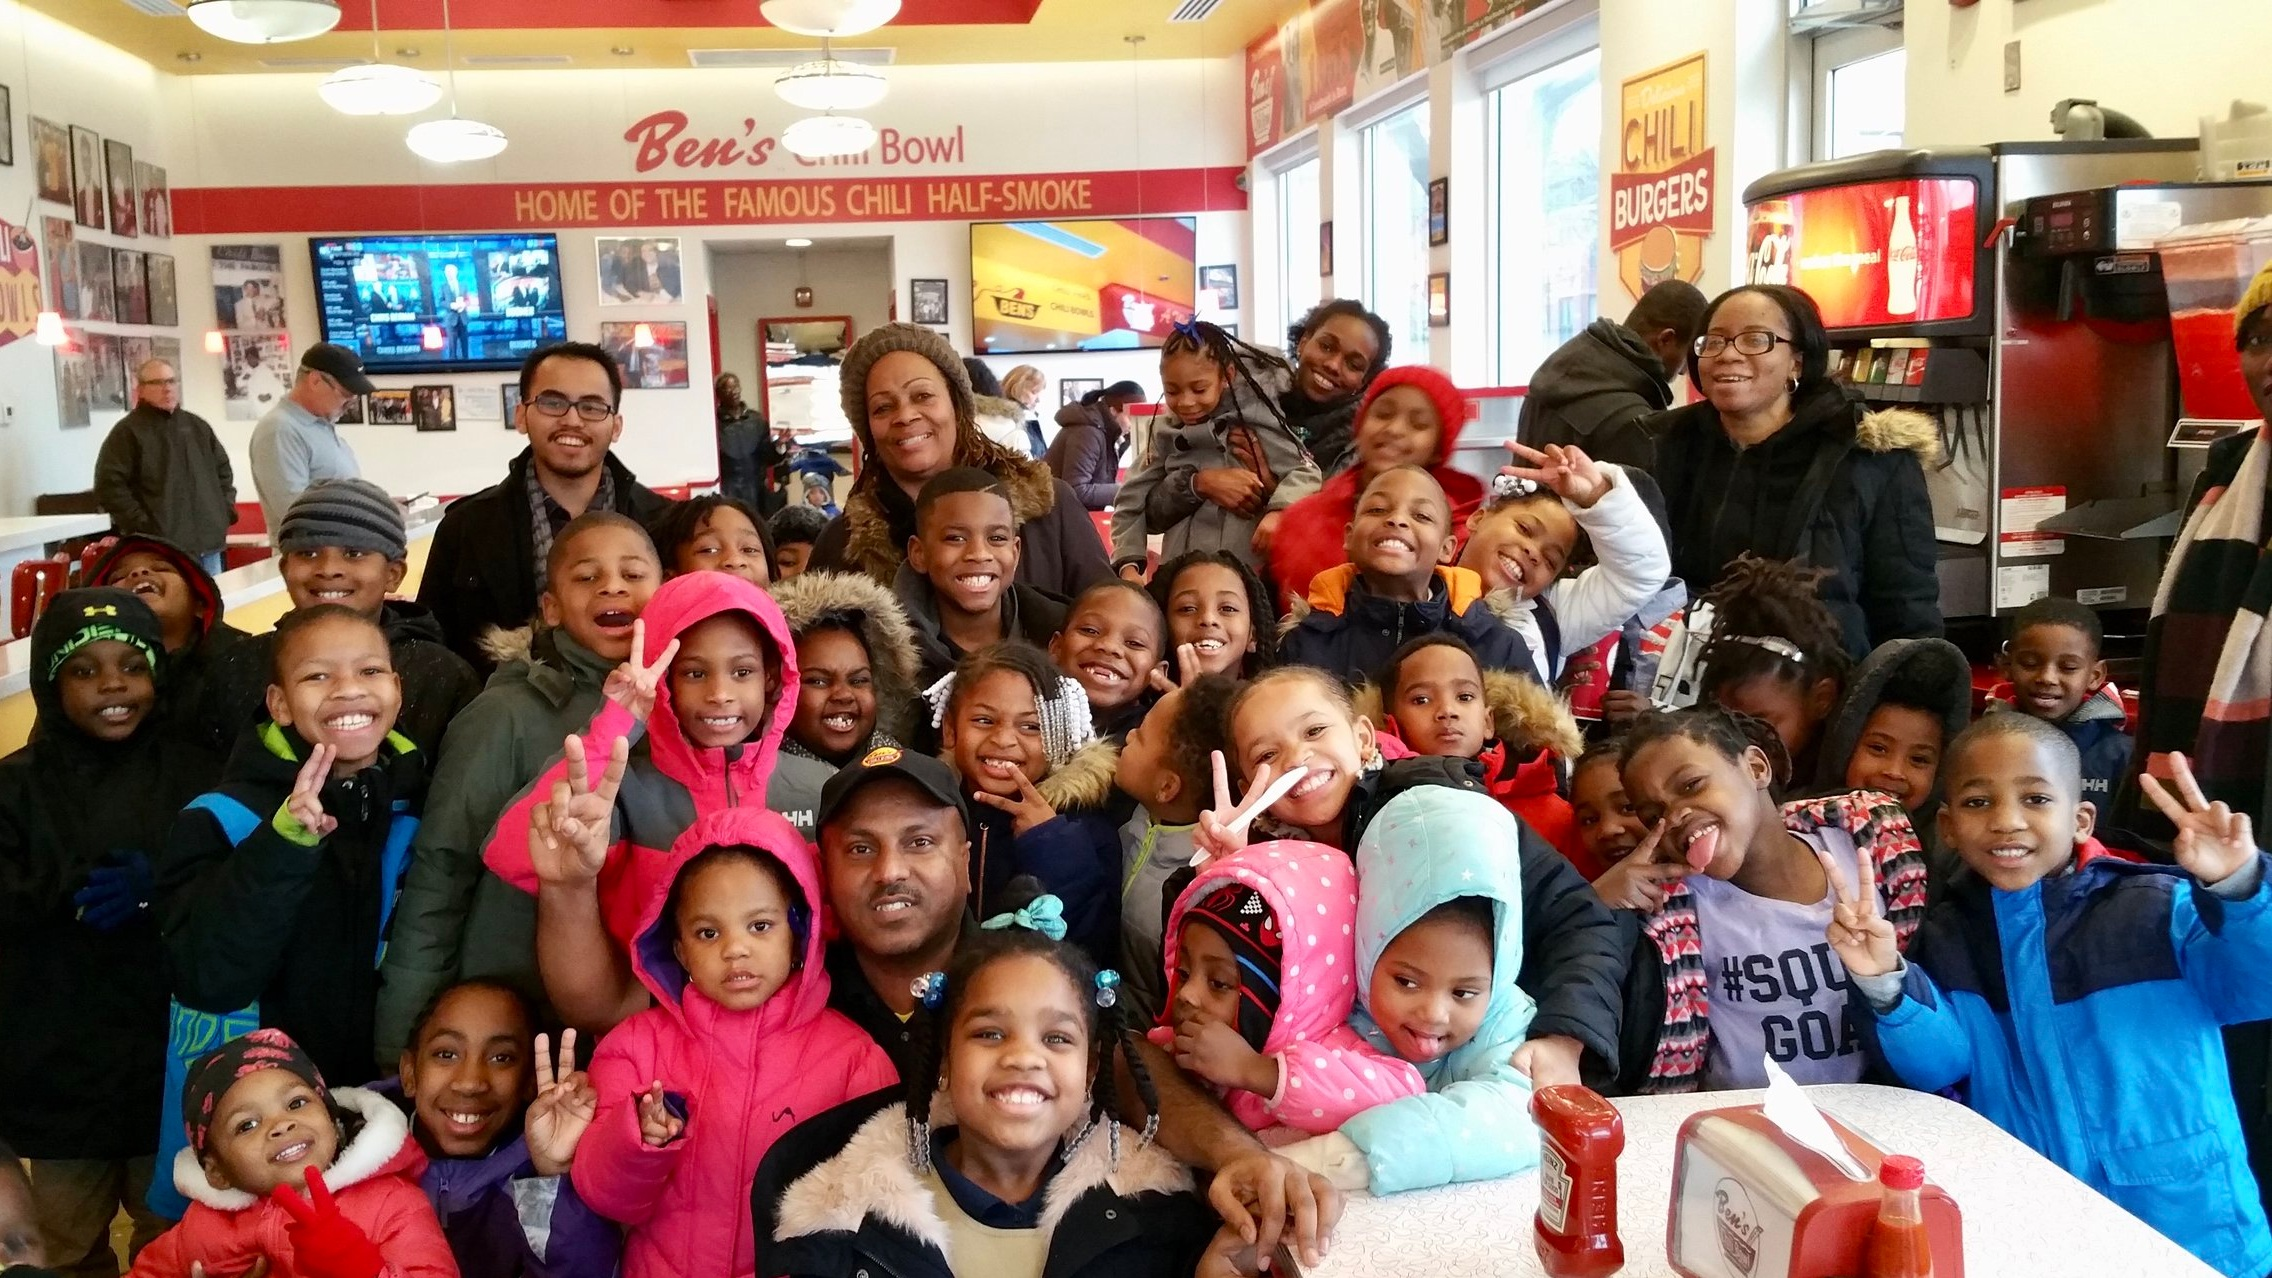 A happy group of students stops by Ben's Chili Bowl on H ST NE.